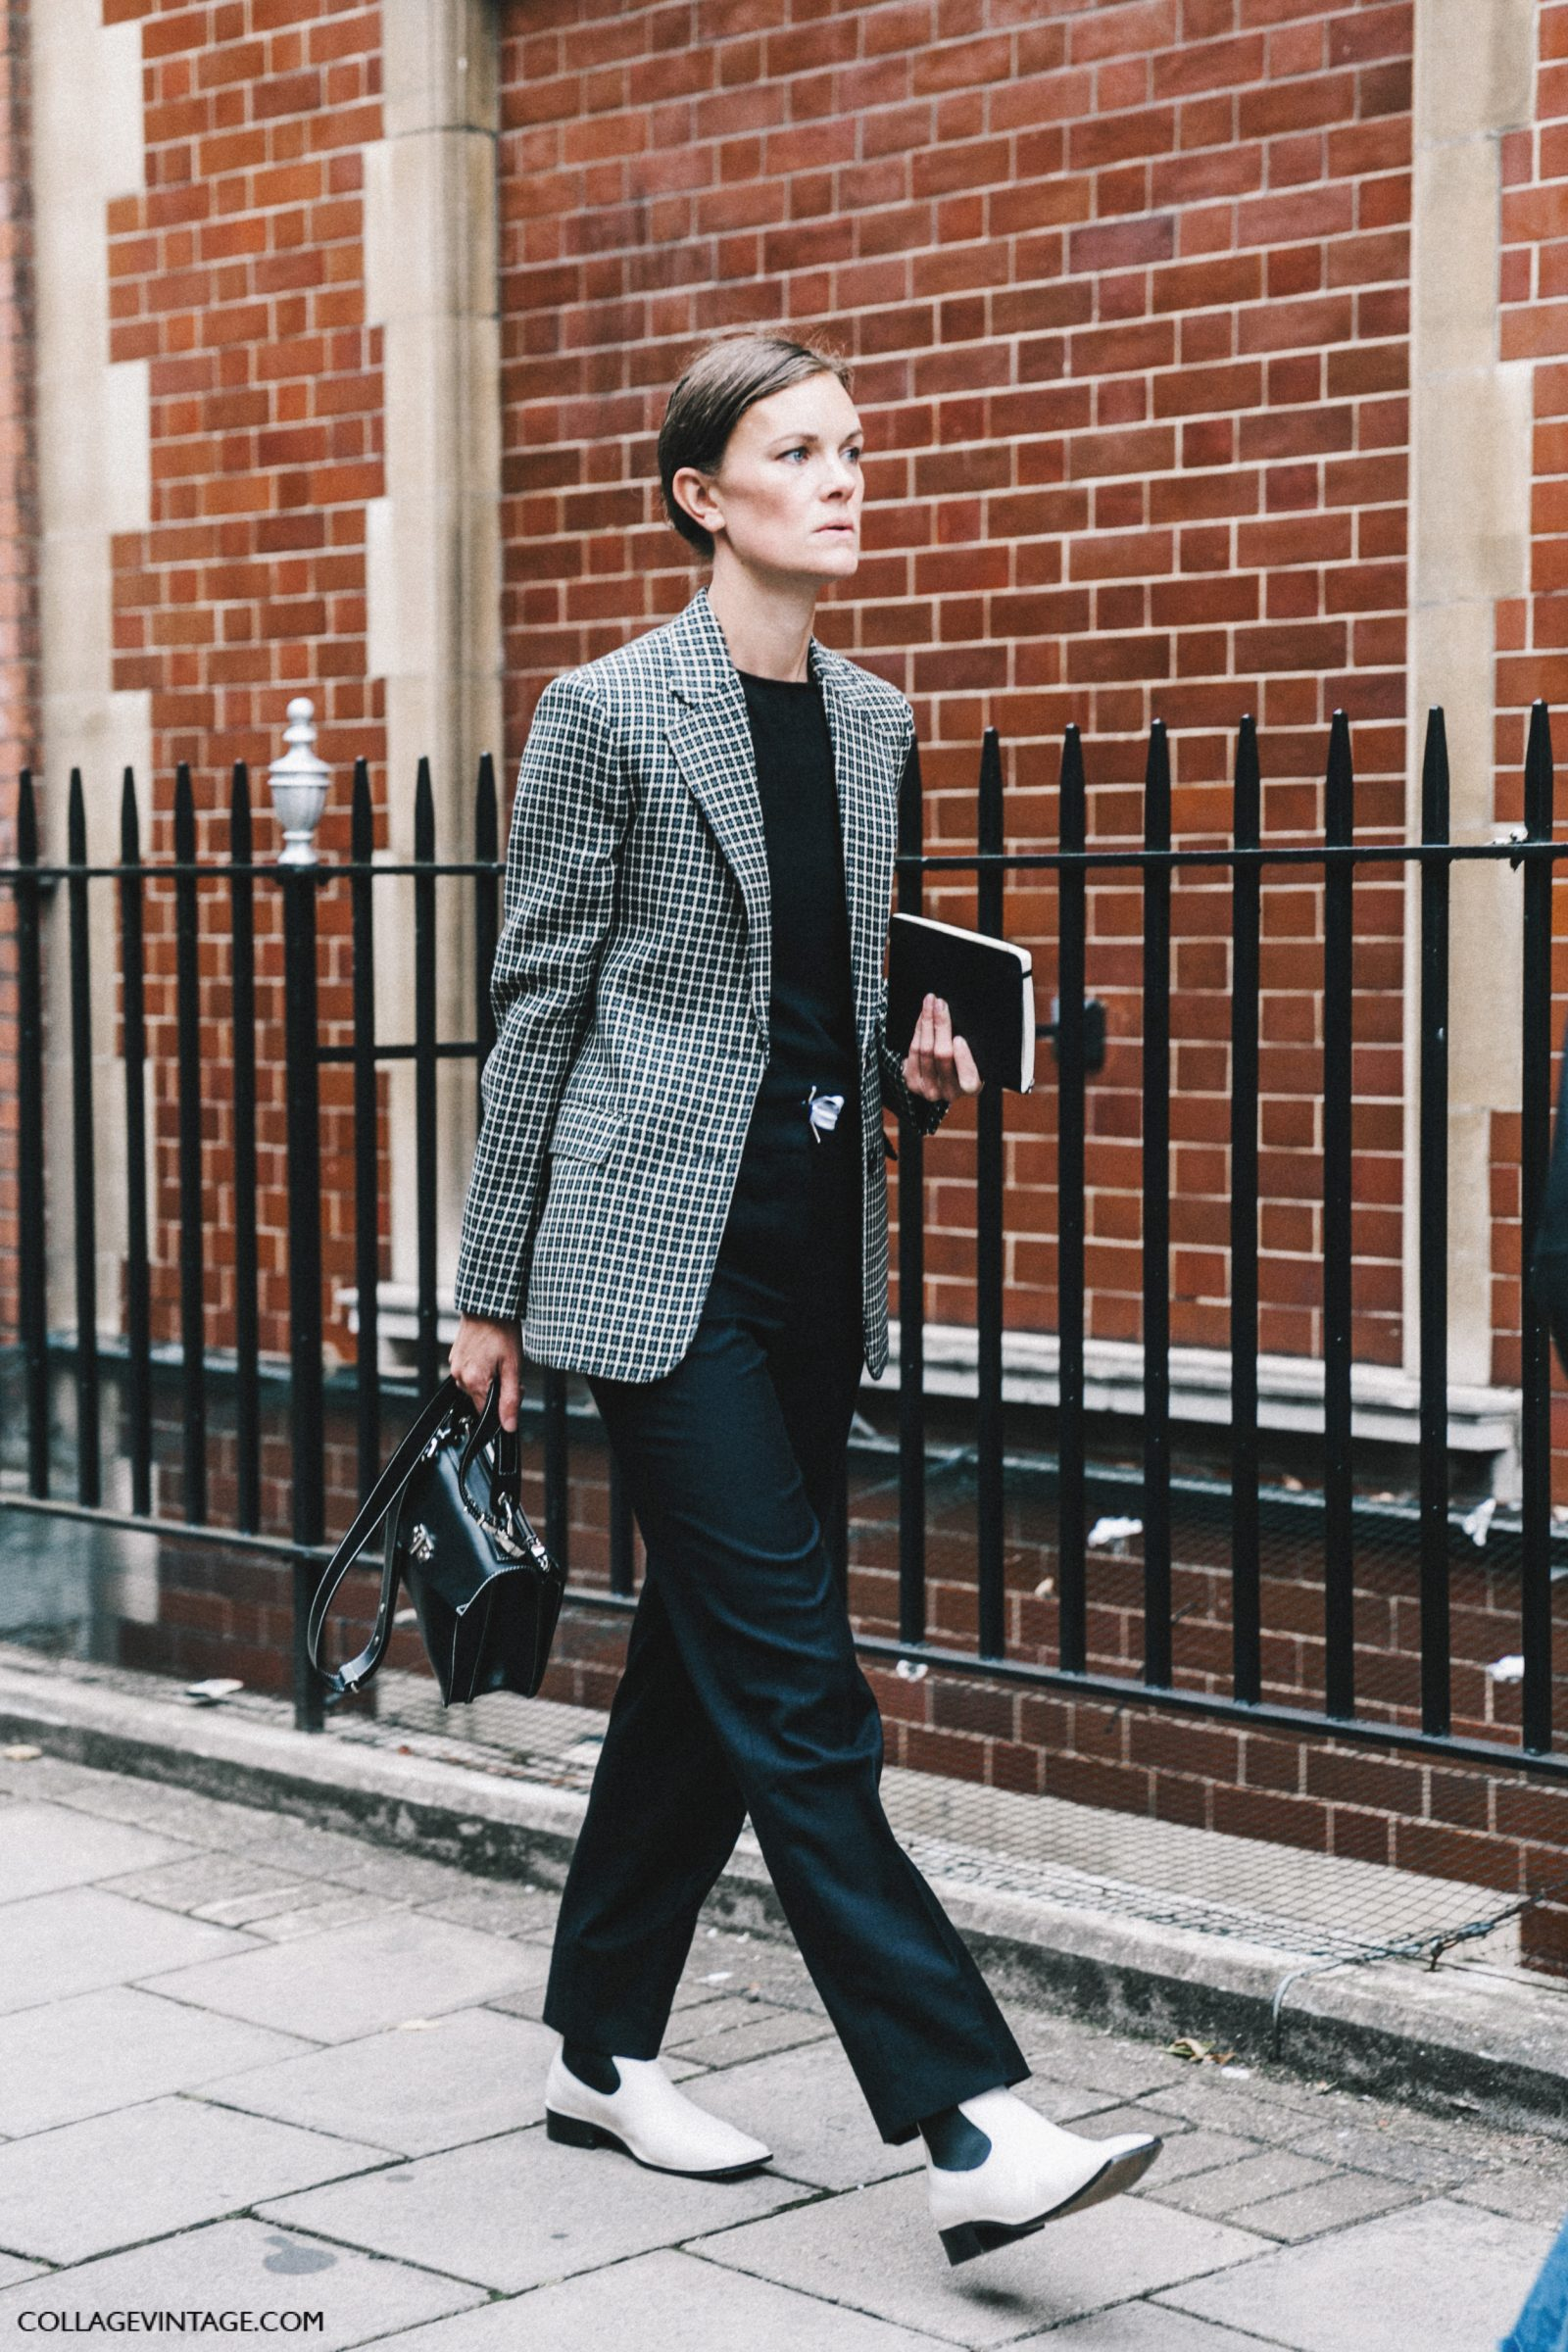 lfw-london_fashion_week_ss17-street_style-outfits-collage_vintage-vintage-jw_anderson-house_of_holland-40